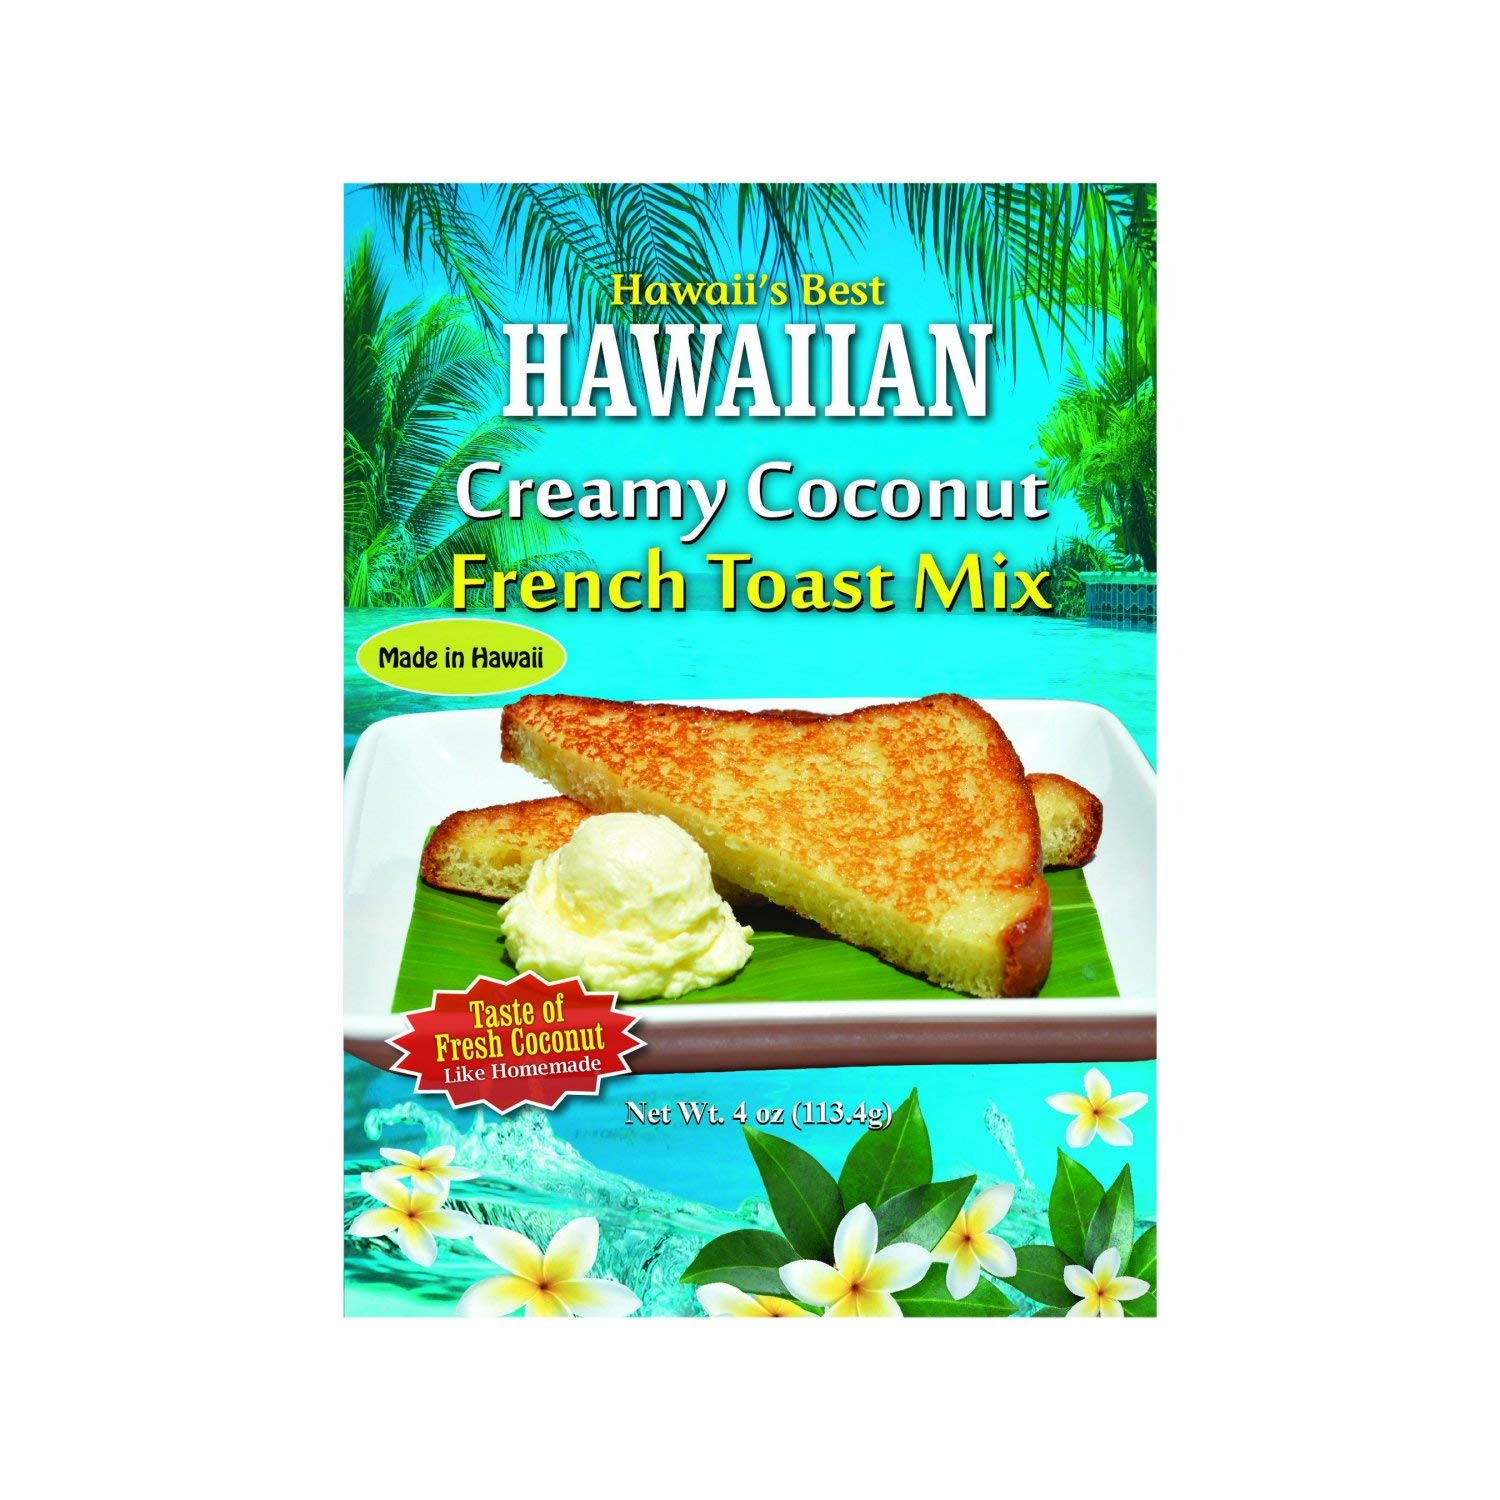 Hawaii's Best Hawaiian Creamy Coconut French Toast Mix